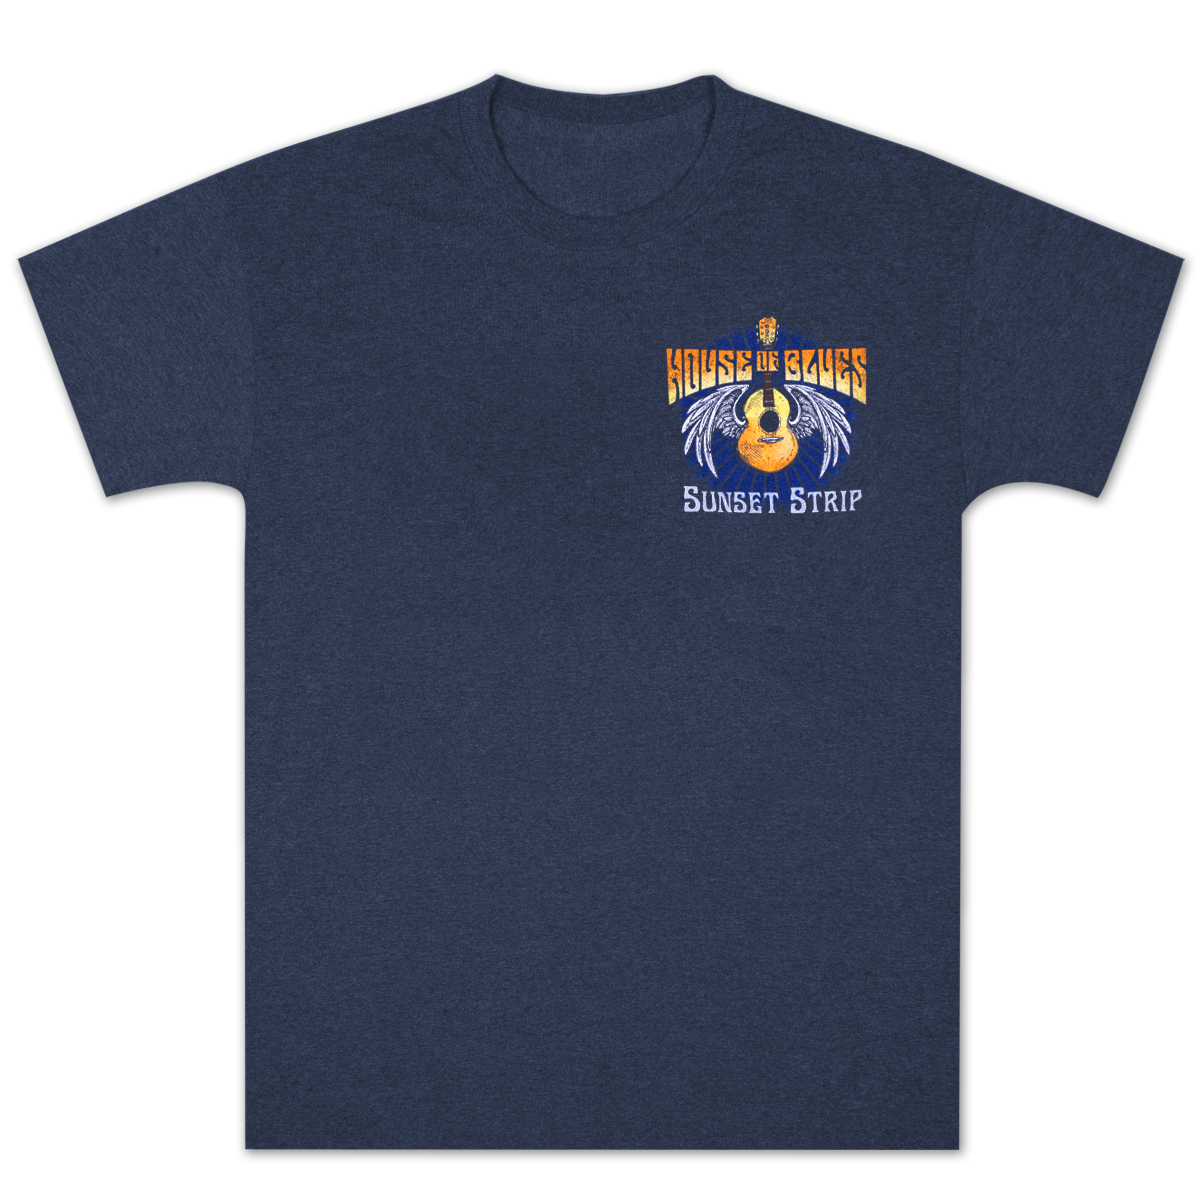 House of Blues Fly High T-Shirt - San Diego